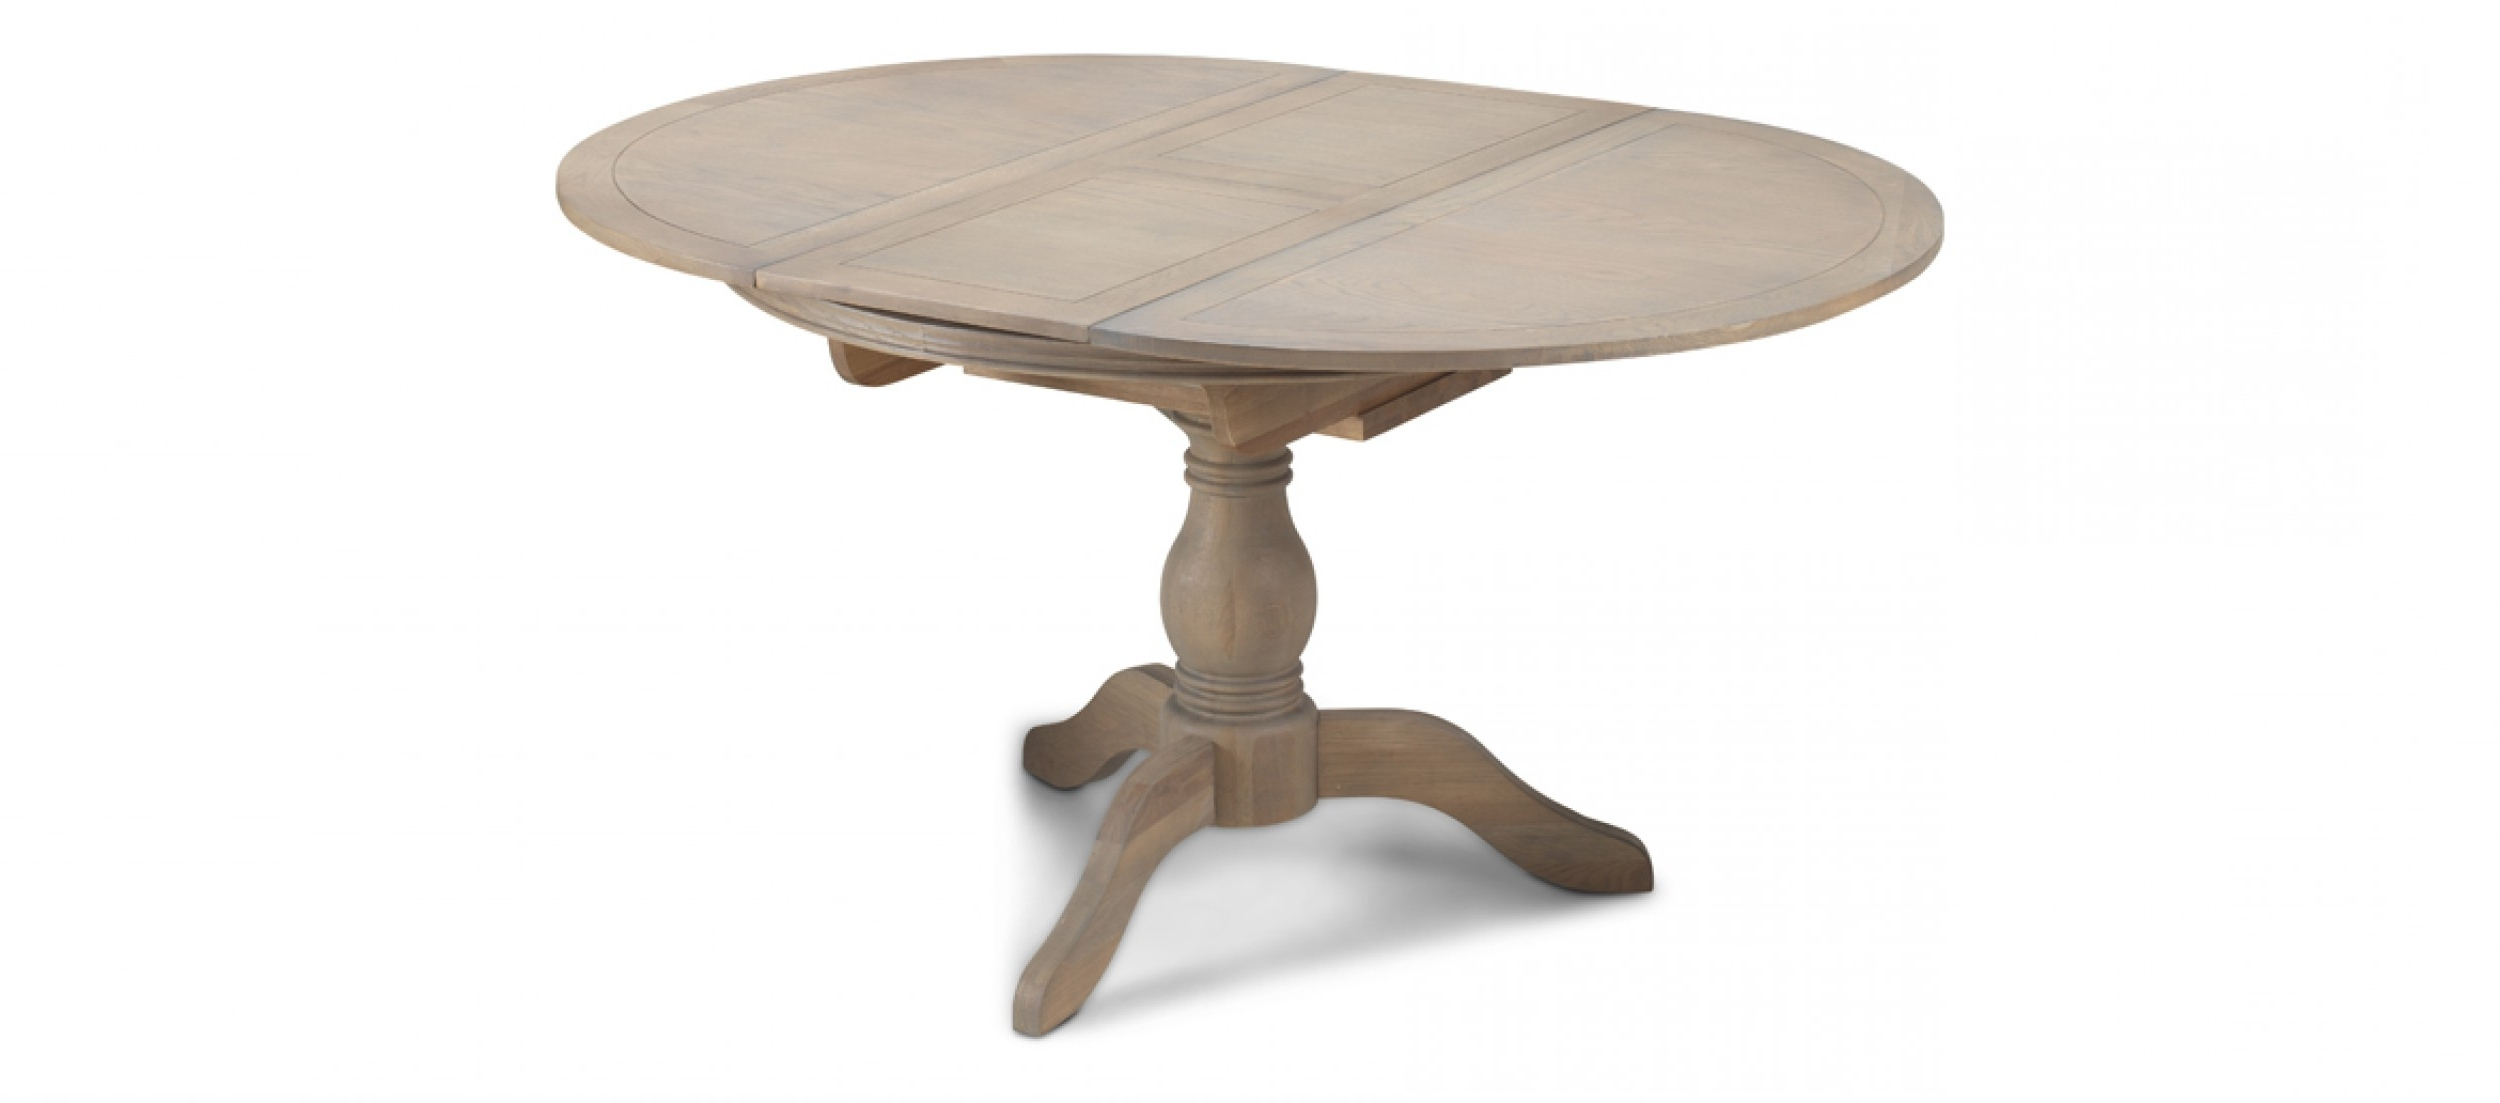 Kilmar Oak Living & Dining Ciruclar Extended Dining Table – Quercus Pertaining To Favorite Extended Round Dining Tables (Gallery 11 of 25)